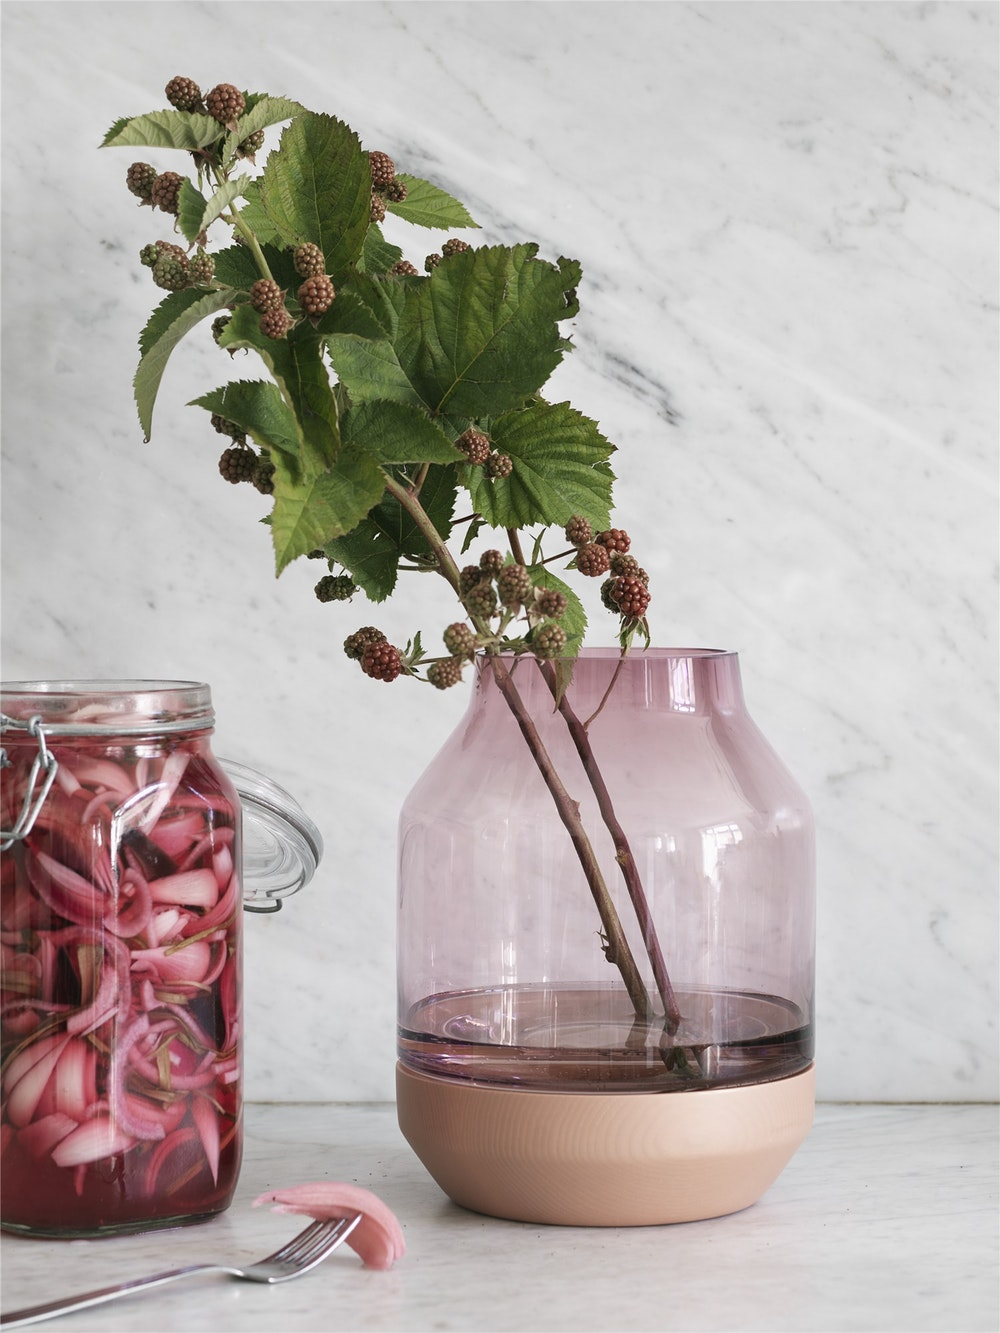 A modern glass vase with wooden bottom.